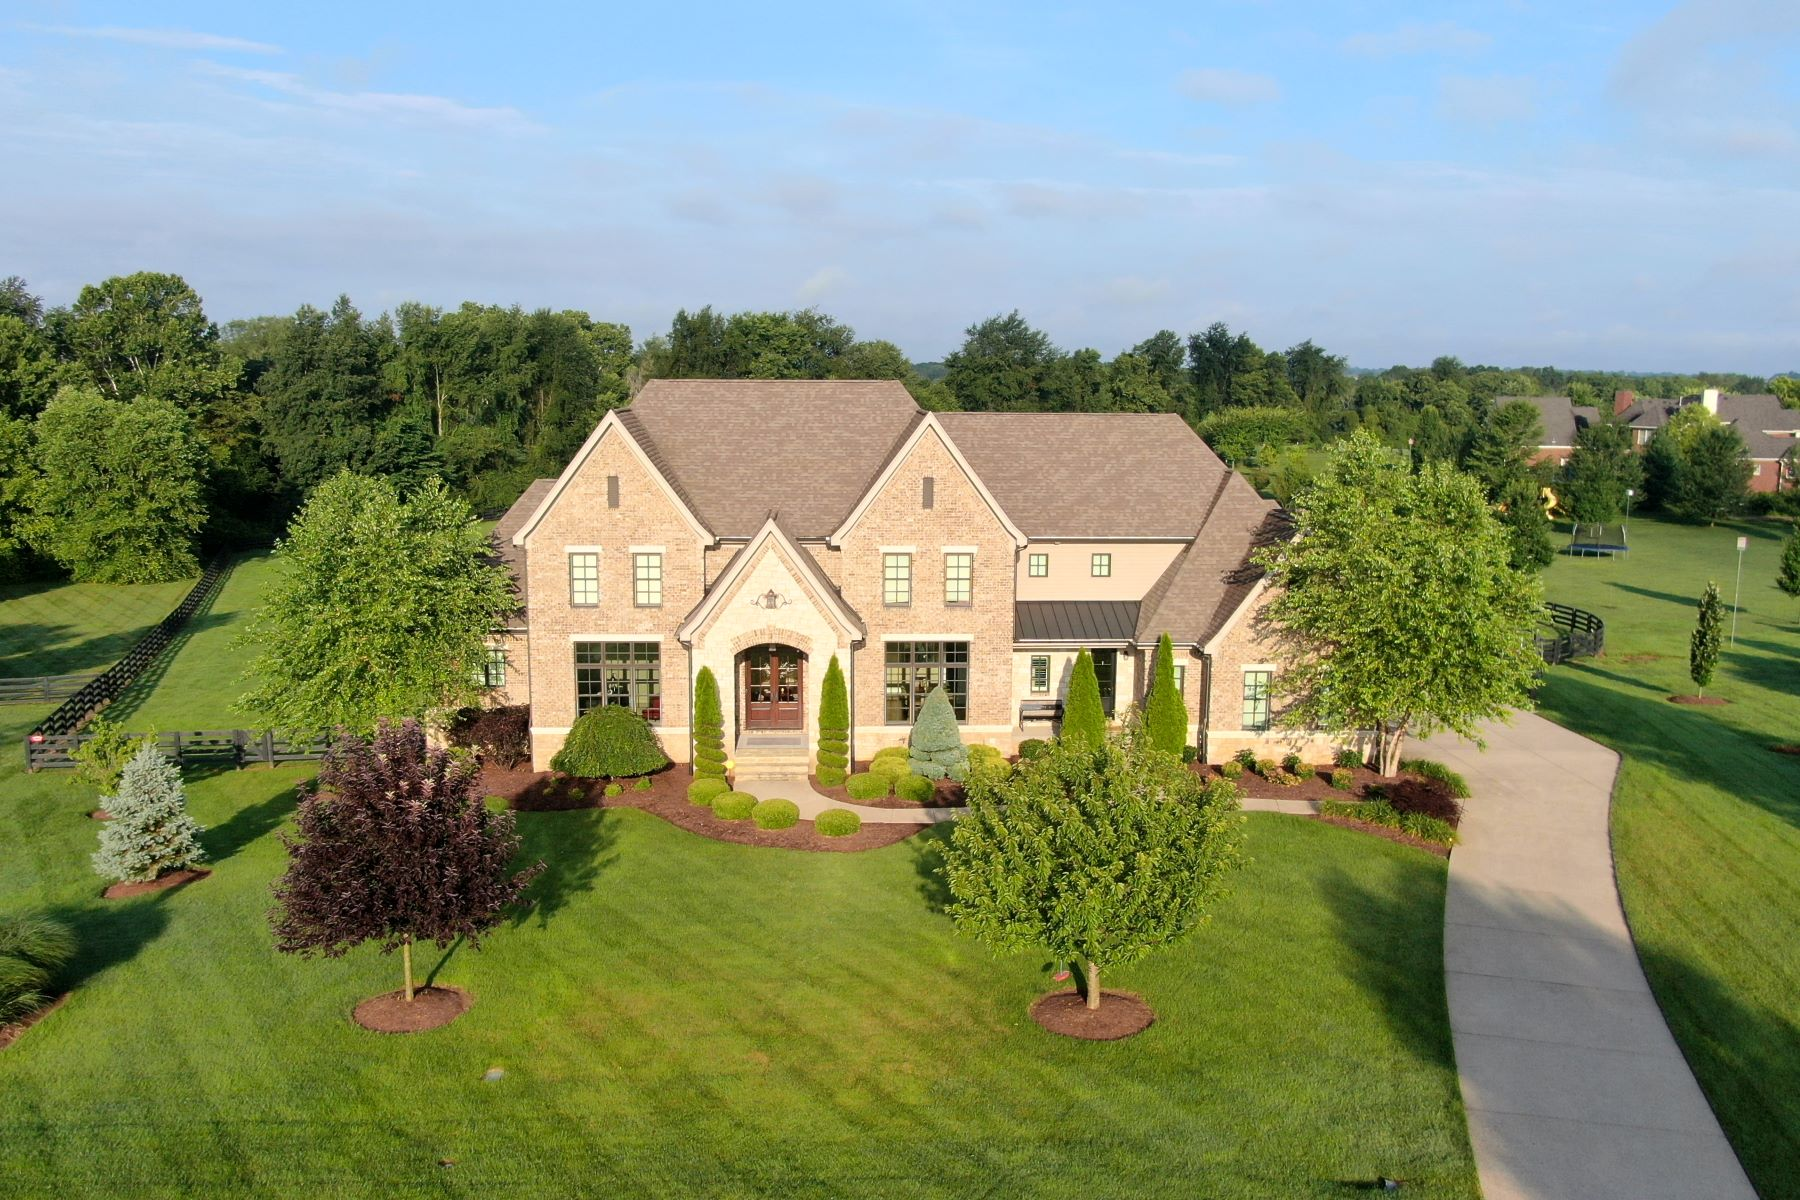 Single Family Homes for Sale at 3302 Overlook Ridge Road Prospect, Kentucky 40059 United States